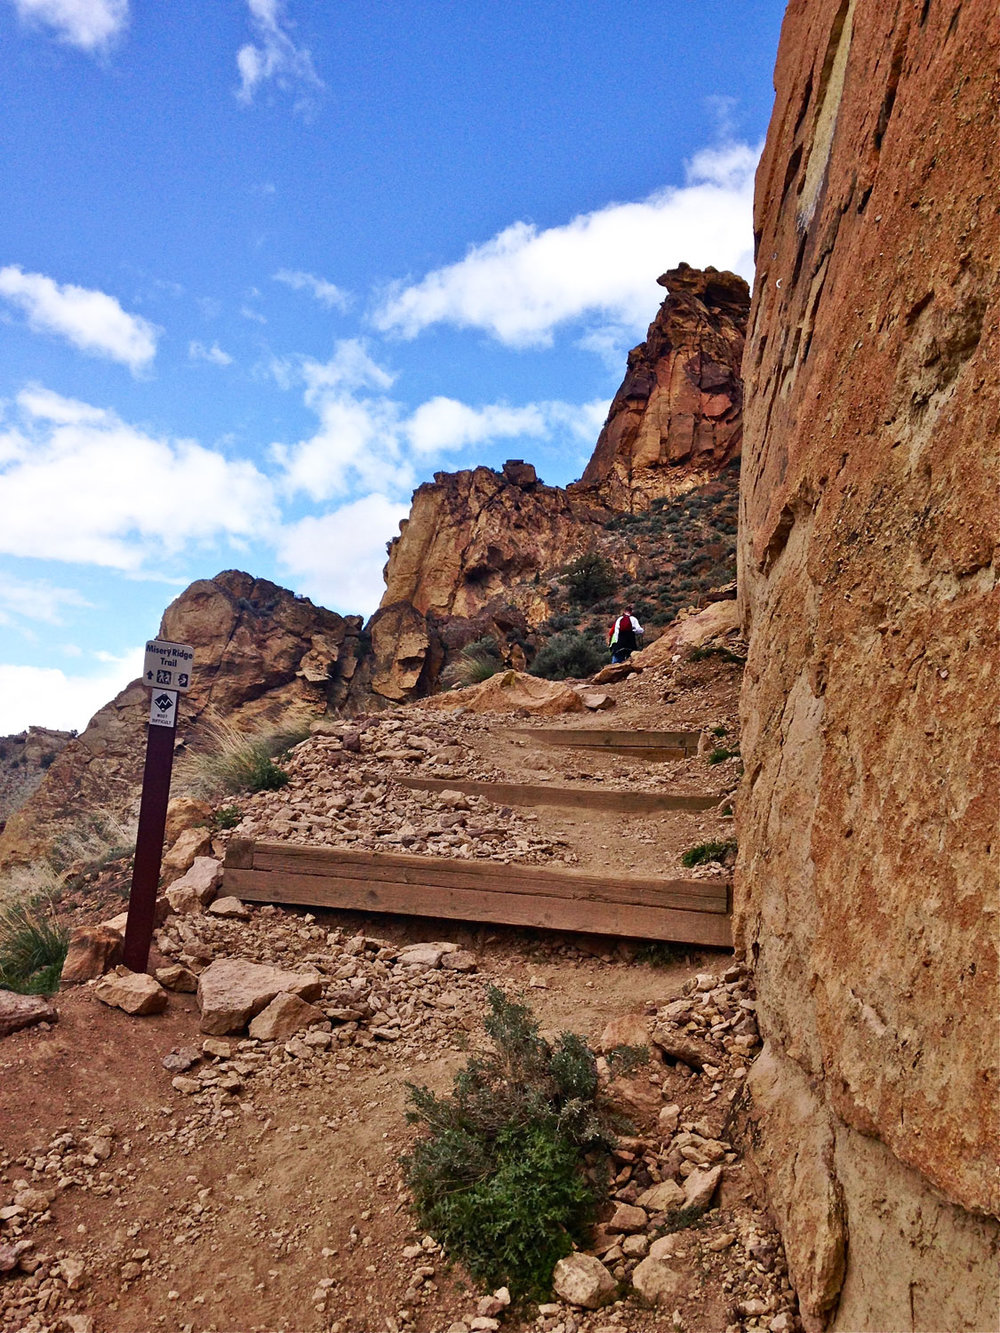 A set of stairs and the sign pointing back up the hill at the base of Monkey Face marks the end to the Misery Ridge Trail at Smith Rock State Park. The loop is completed by joining either leg of the Mesa Verde Trail to the River Trail and back to the bridge.